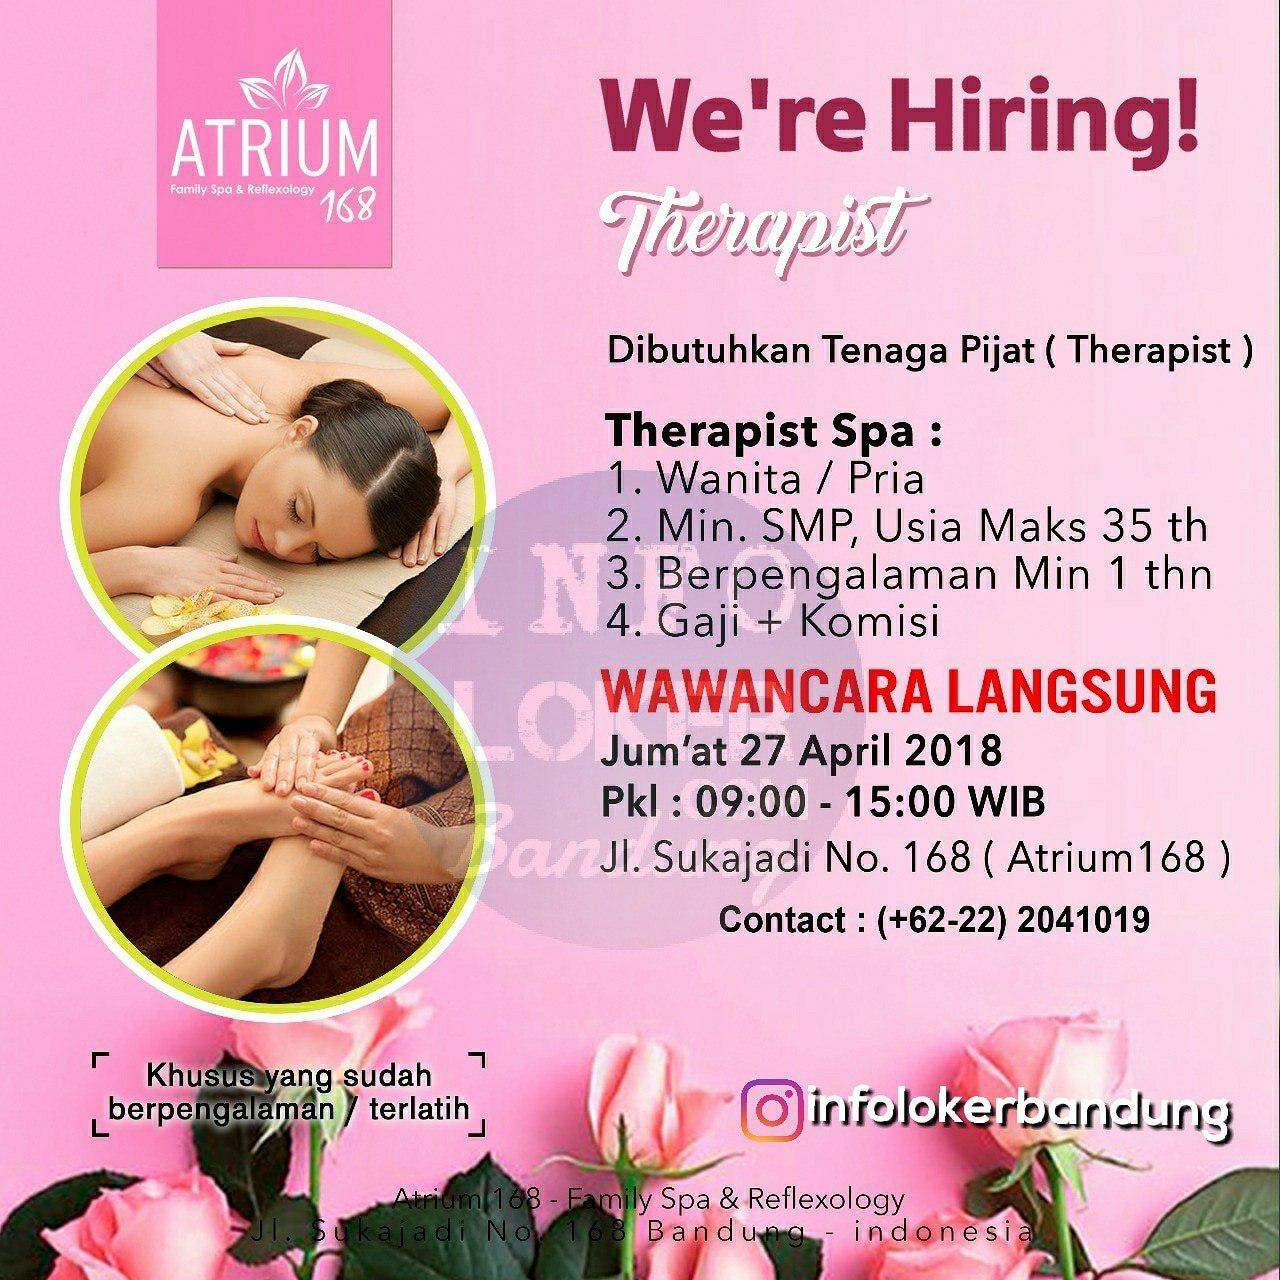 Walk In Interview Atrium 168 Family Spa & Reflexology Bandung 27 April 2018